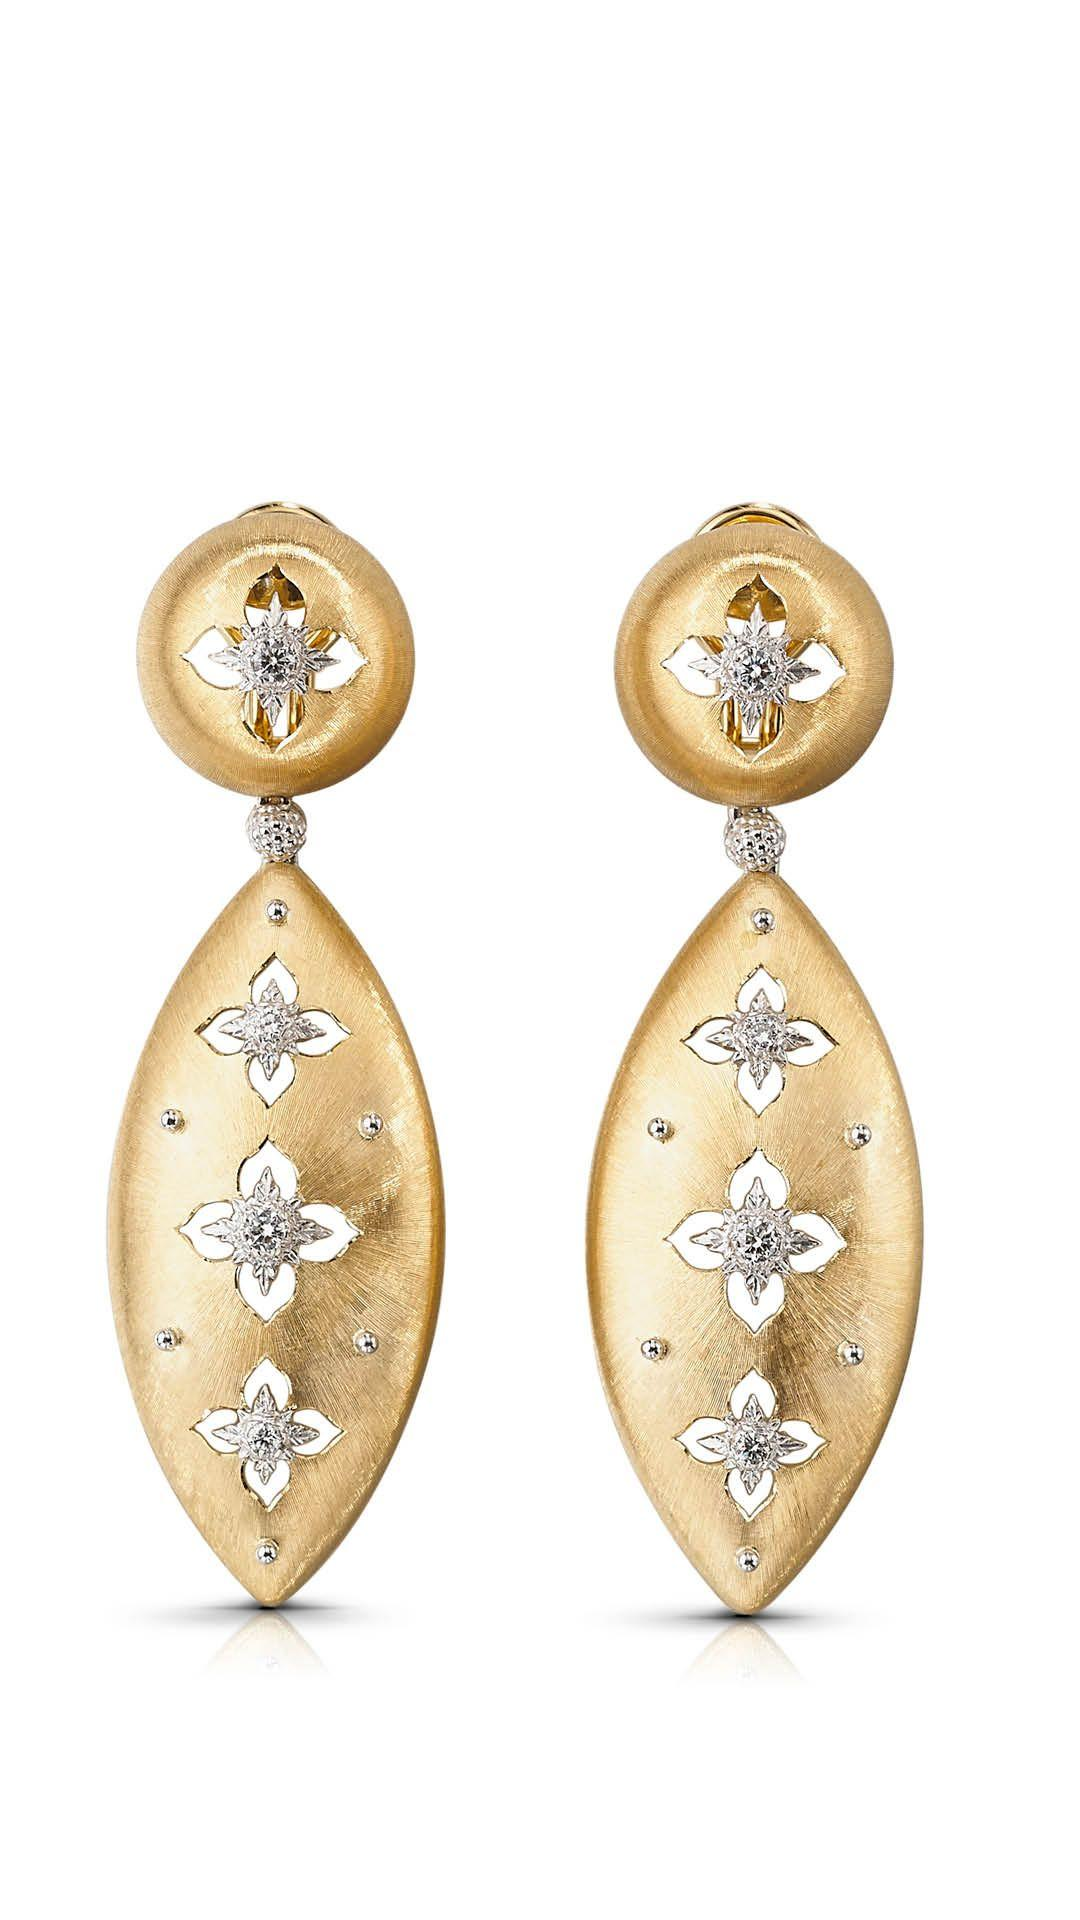 Gold and diamond earrings by Buccellati